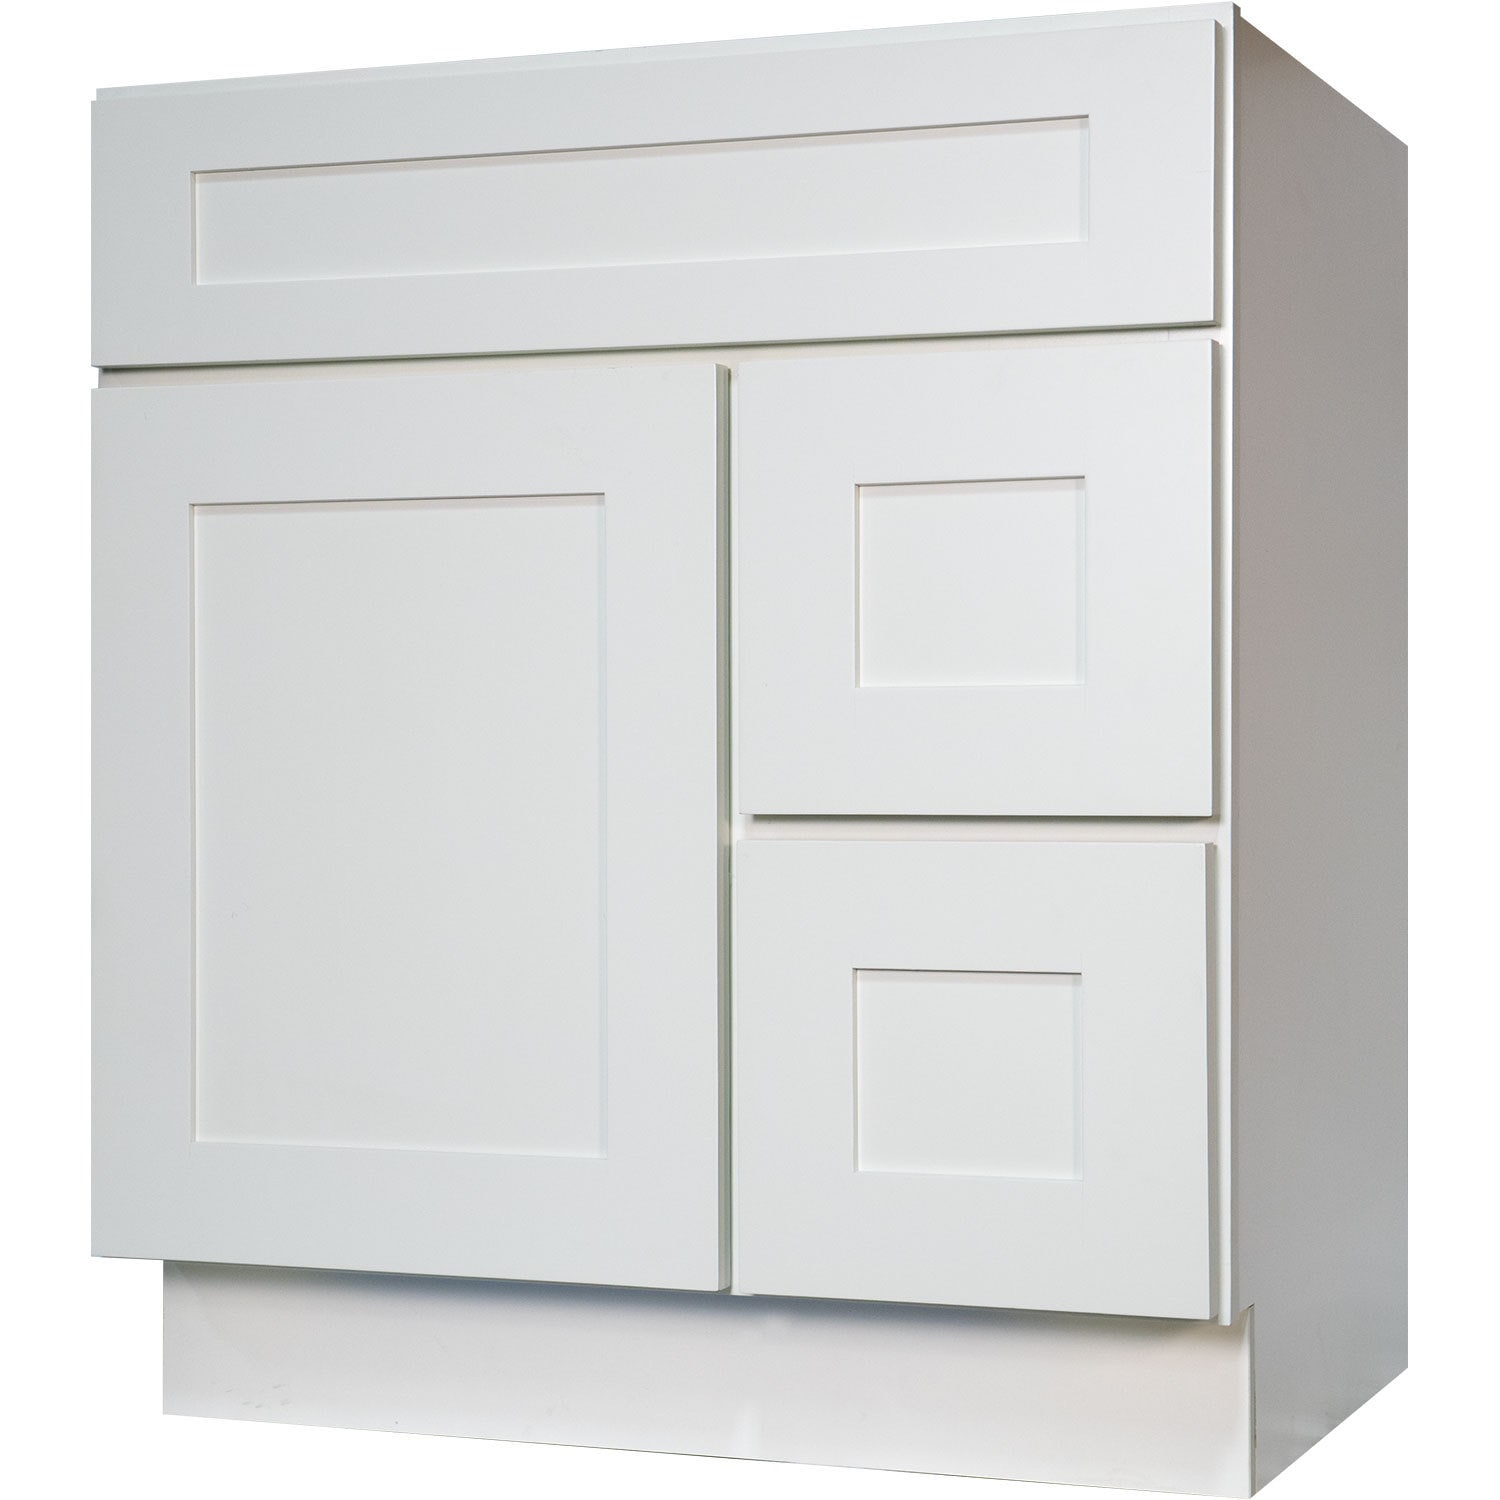 Shop Everyday Cabinets Shaker White Wood 30-inch Single Sink ...